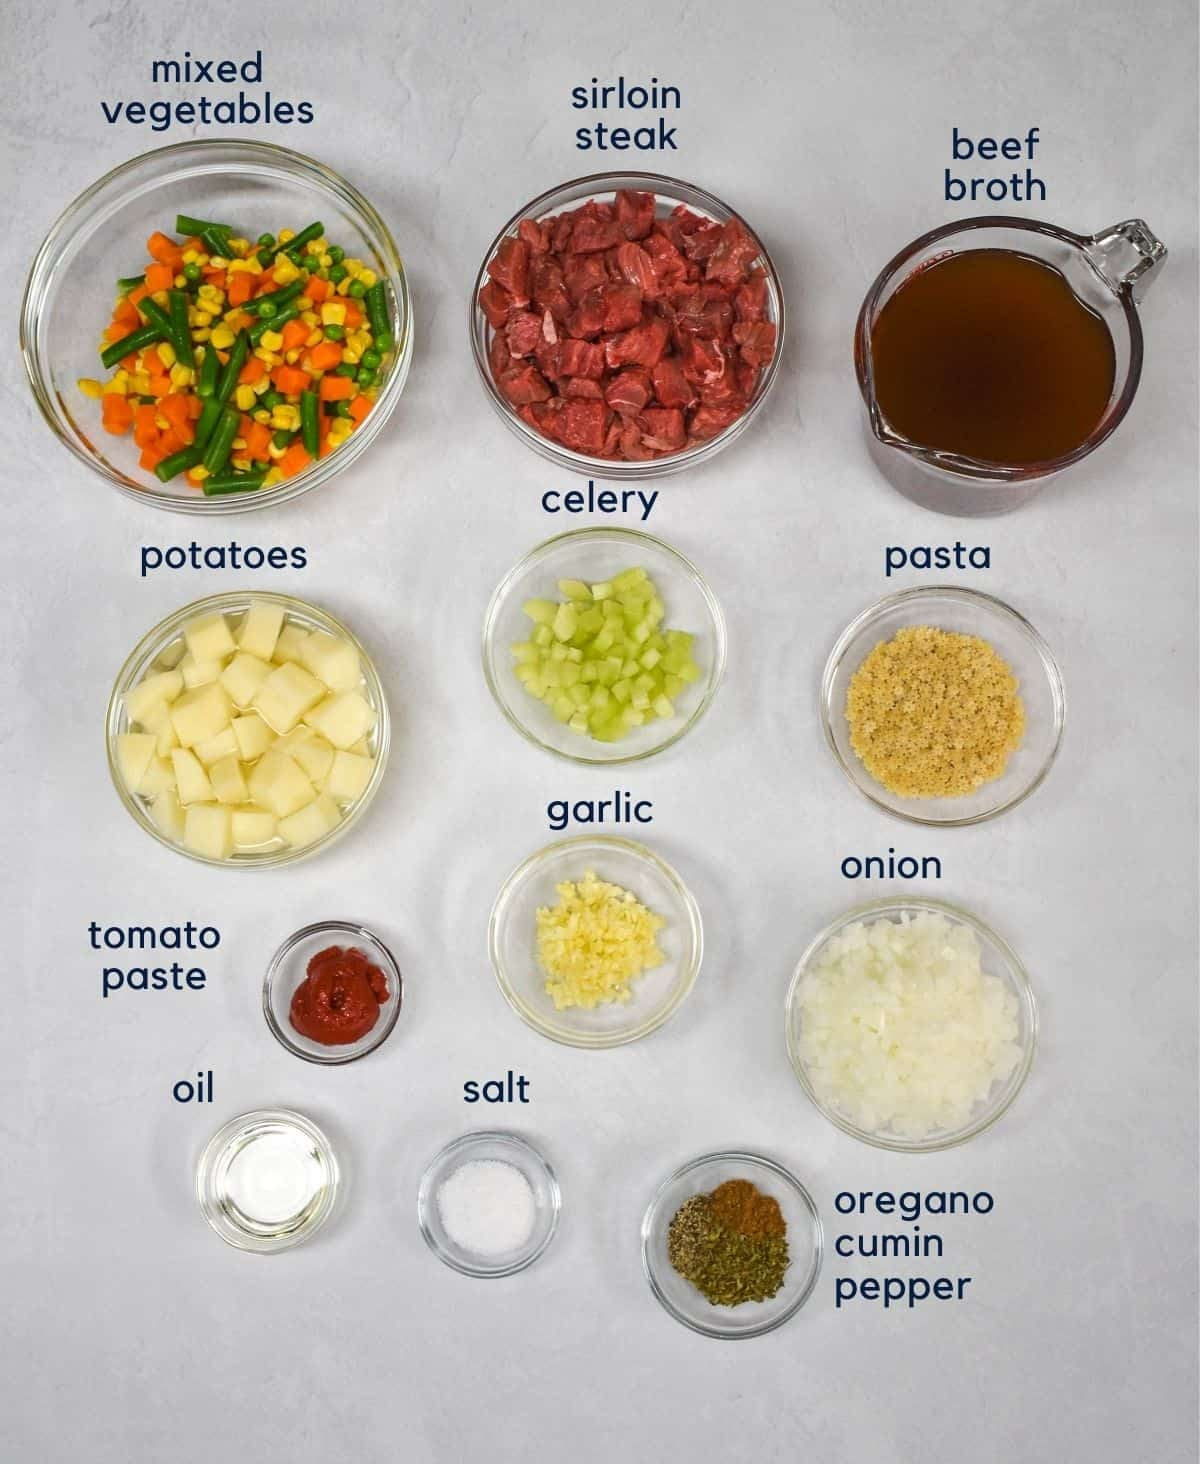 The ingredients for the beef vegetable soup arranged in glass bowls and set on a white table. Each item has a label in small letters above it.